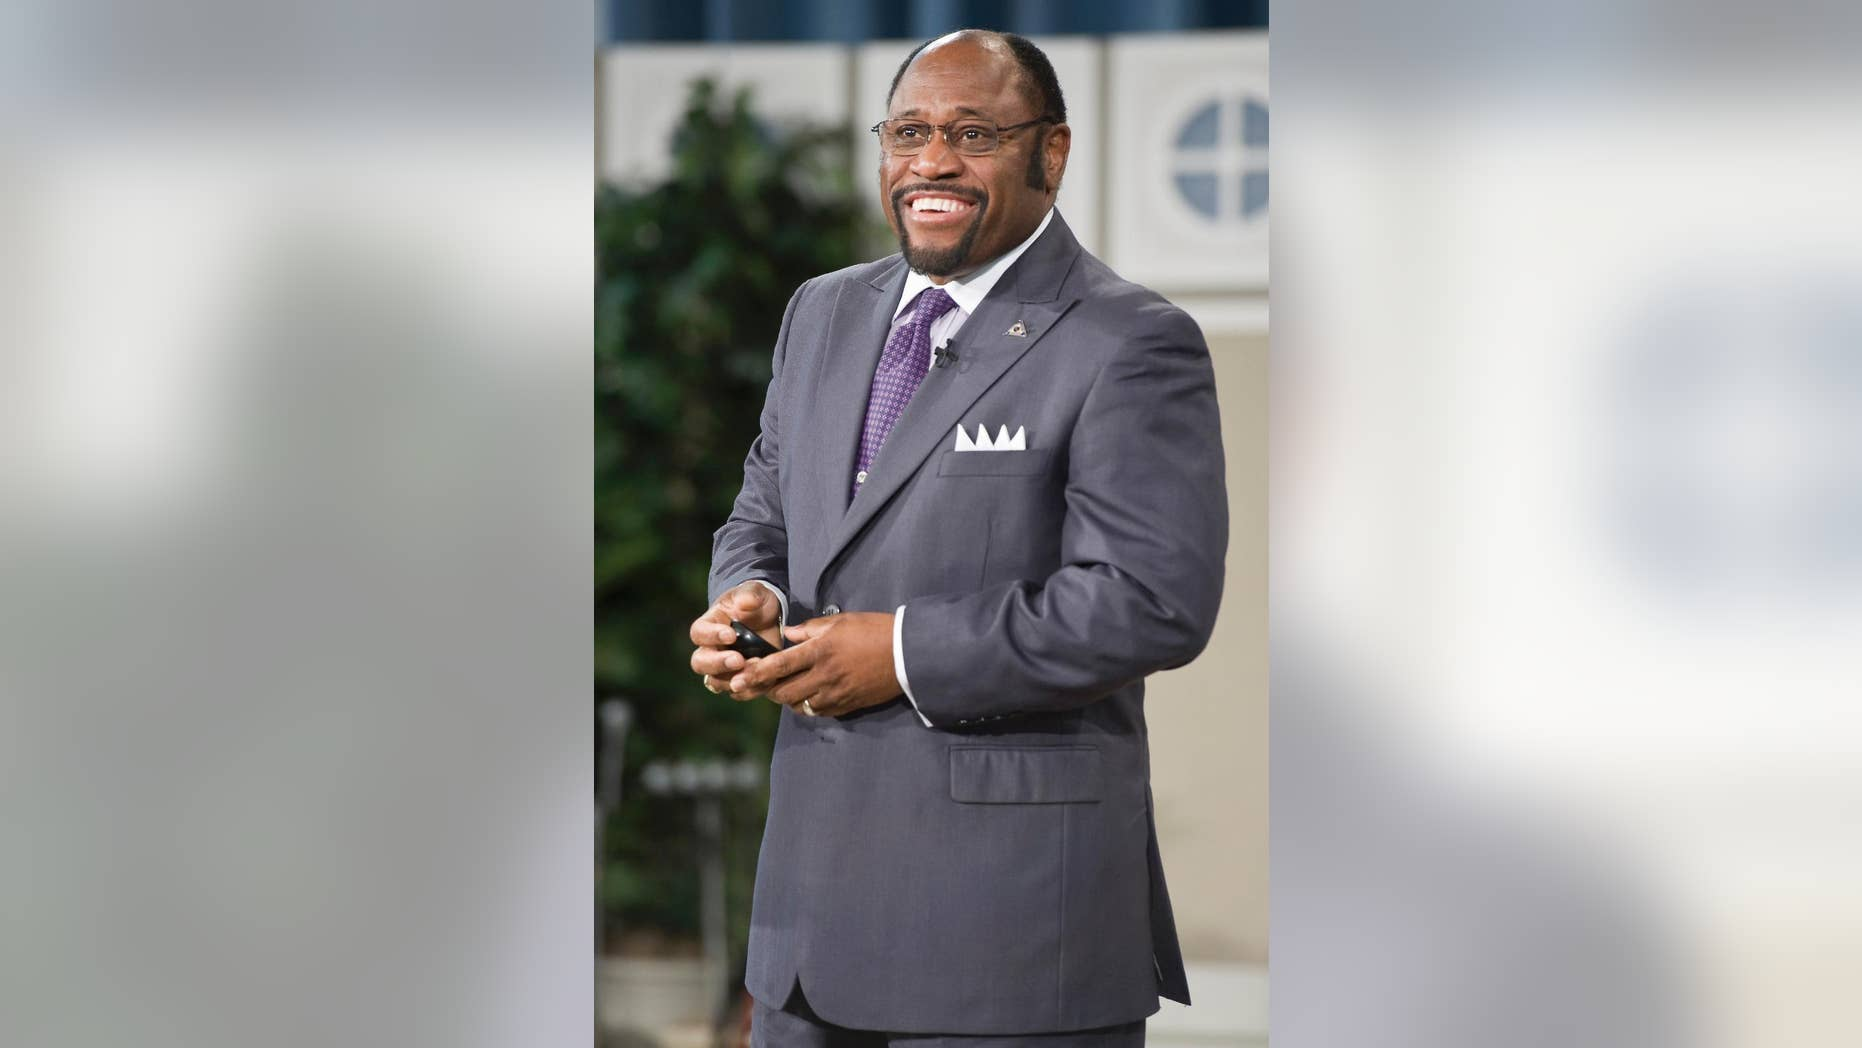 In this Jan. 19, 2011 photo provided by Oral Roberts University, Rev. Myles Munroe preaches during an Oral Roberts University chapel service in Tulsa, Oklahoma. Severe weather was likely a factor in the small plane crash on Sunday, Nov. 9, 2014 that killed nine people, including the prominent Christian minister and his wife, on approach to the island of Grand Bahama, the Bahamas foreign minister said Monday. The flight was also carrying several members of Munroe's Bahamas Faith Ministries. (AP Photo/Oral Roberts University)